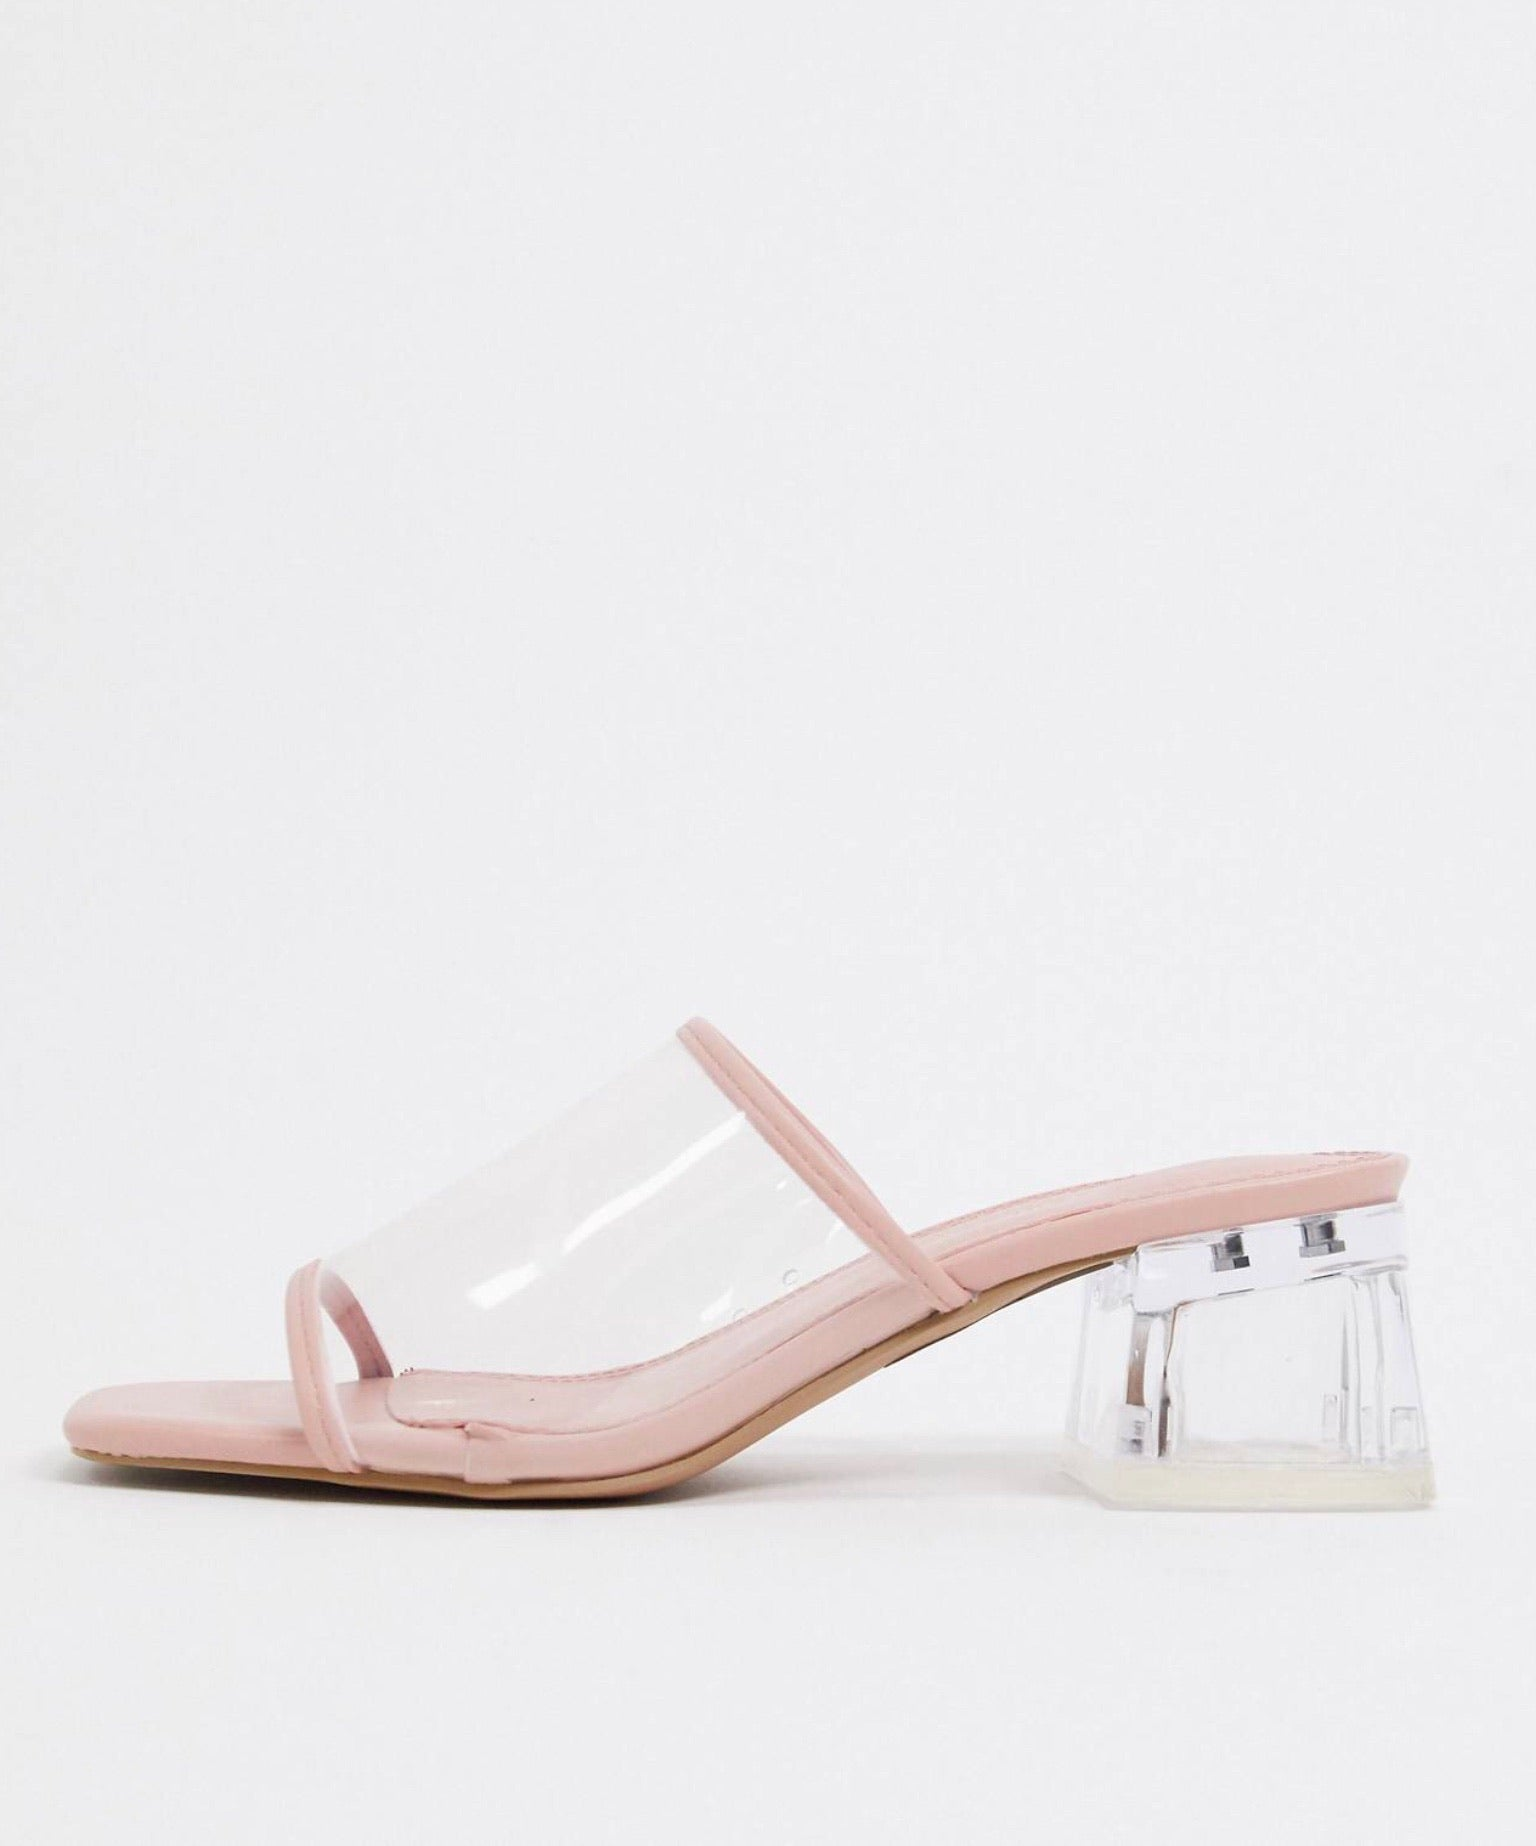 ASOS HARROGATE HEELED MULES IN WARM BEIGE AND CLEAR